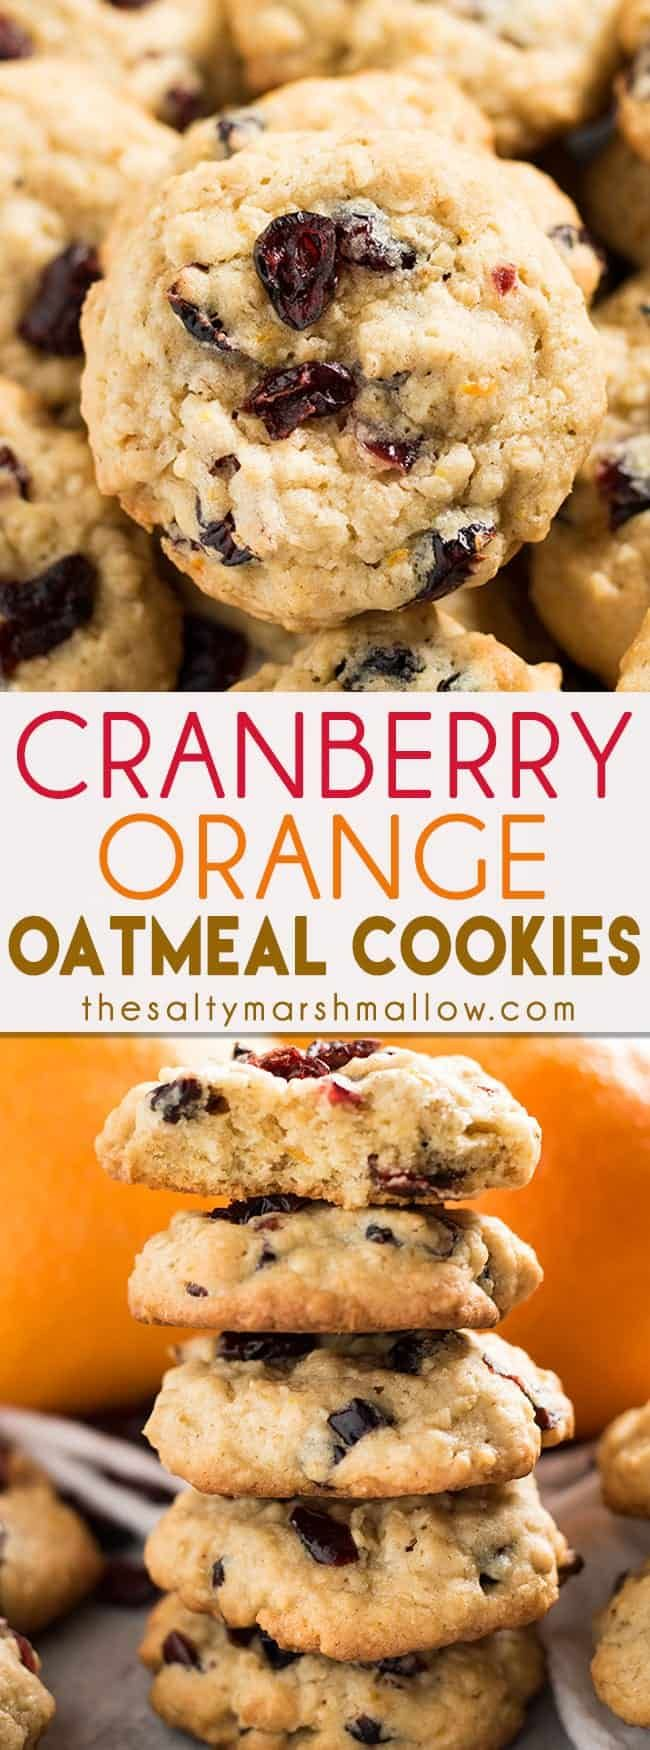 Photo of Cranberry Orange Oatmeal Cookies